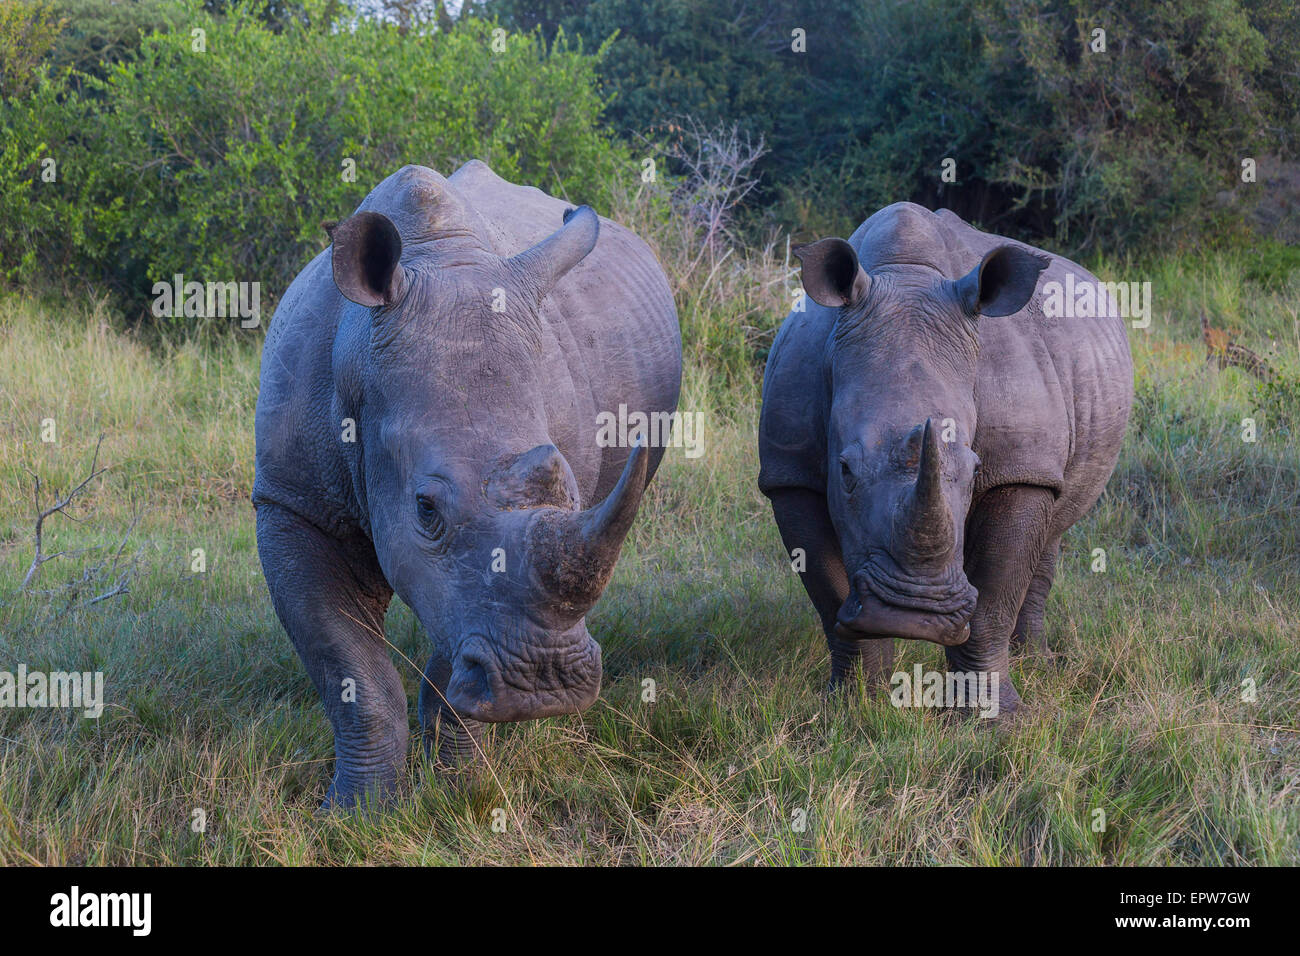 A group of two rhinos in the early morning light - Stock Image